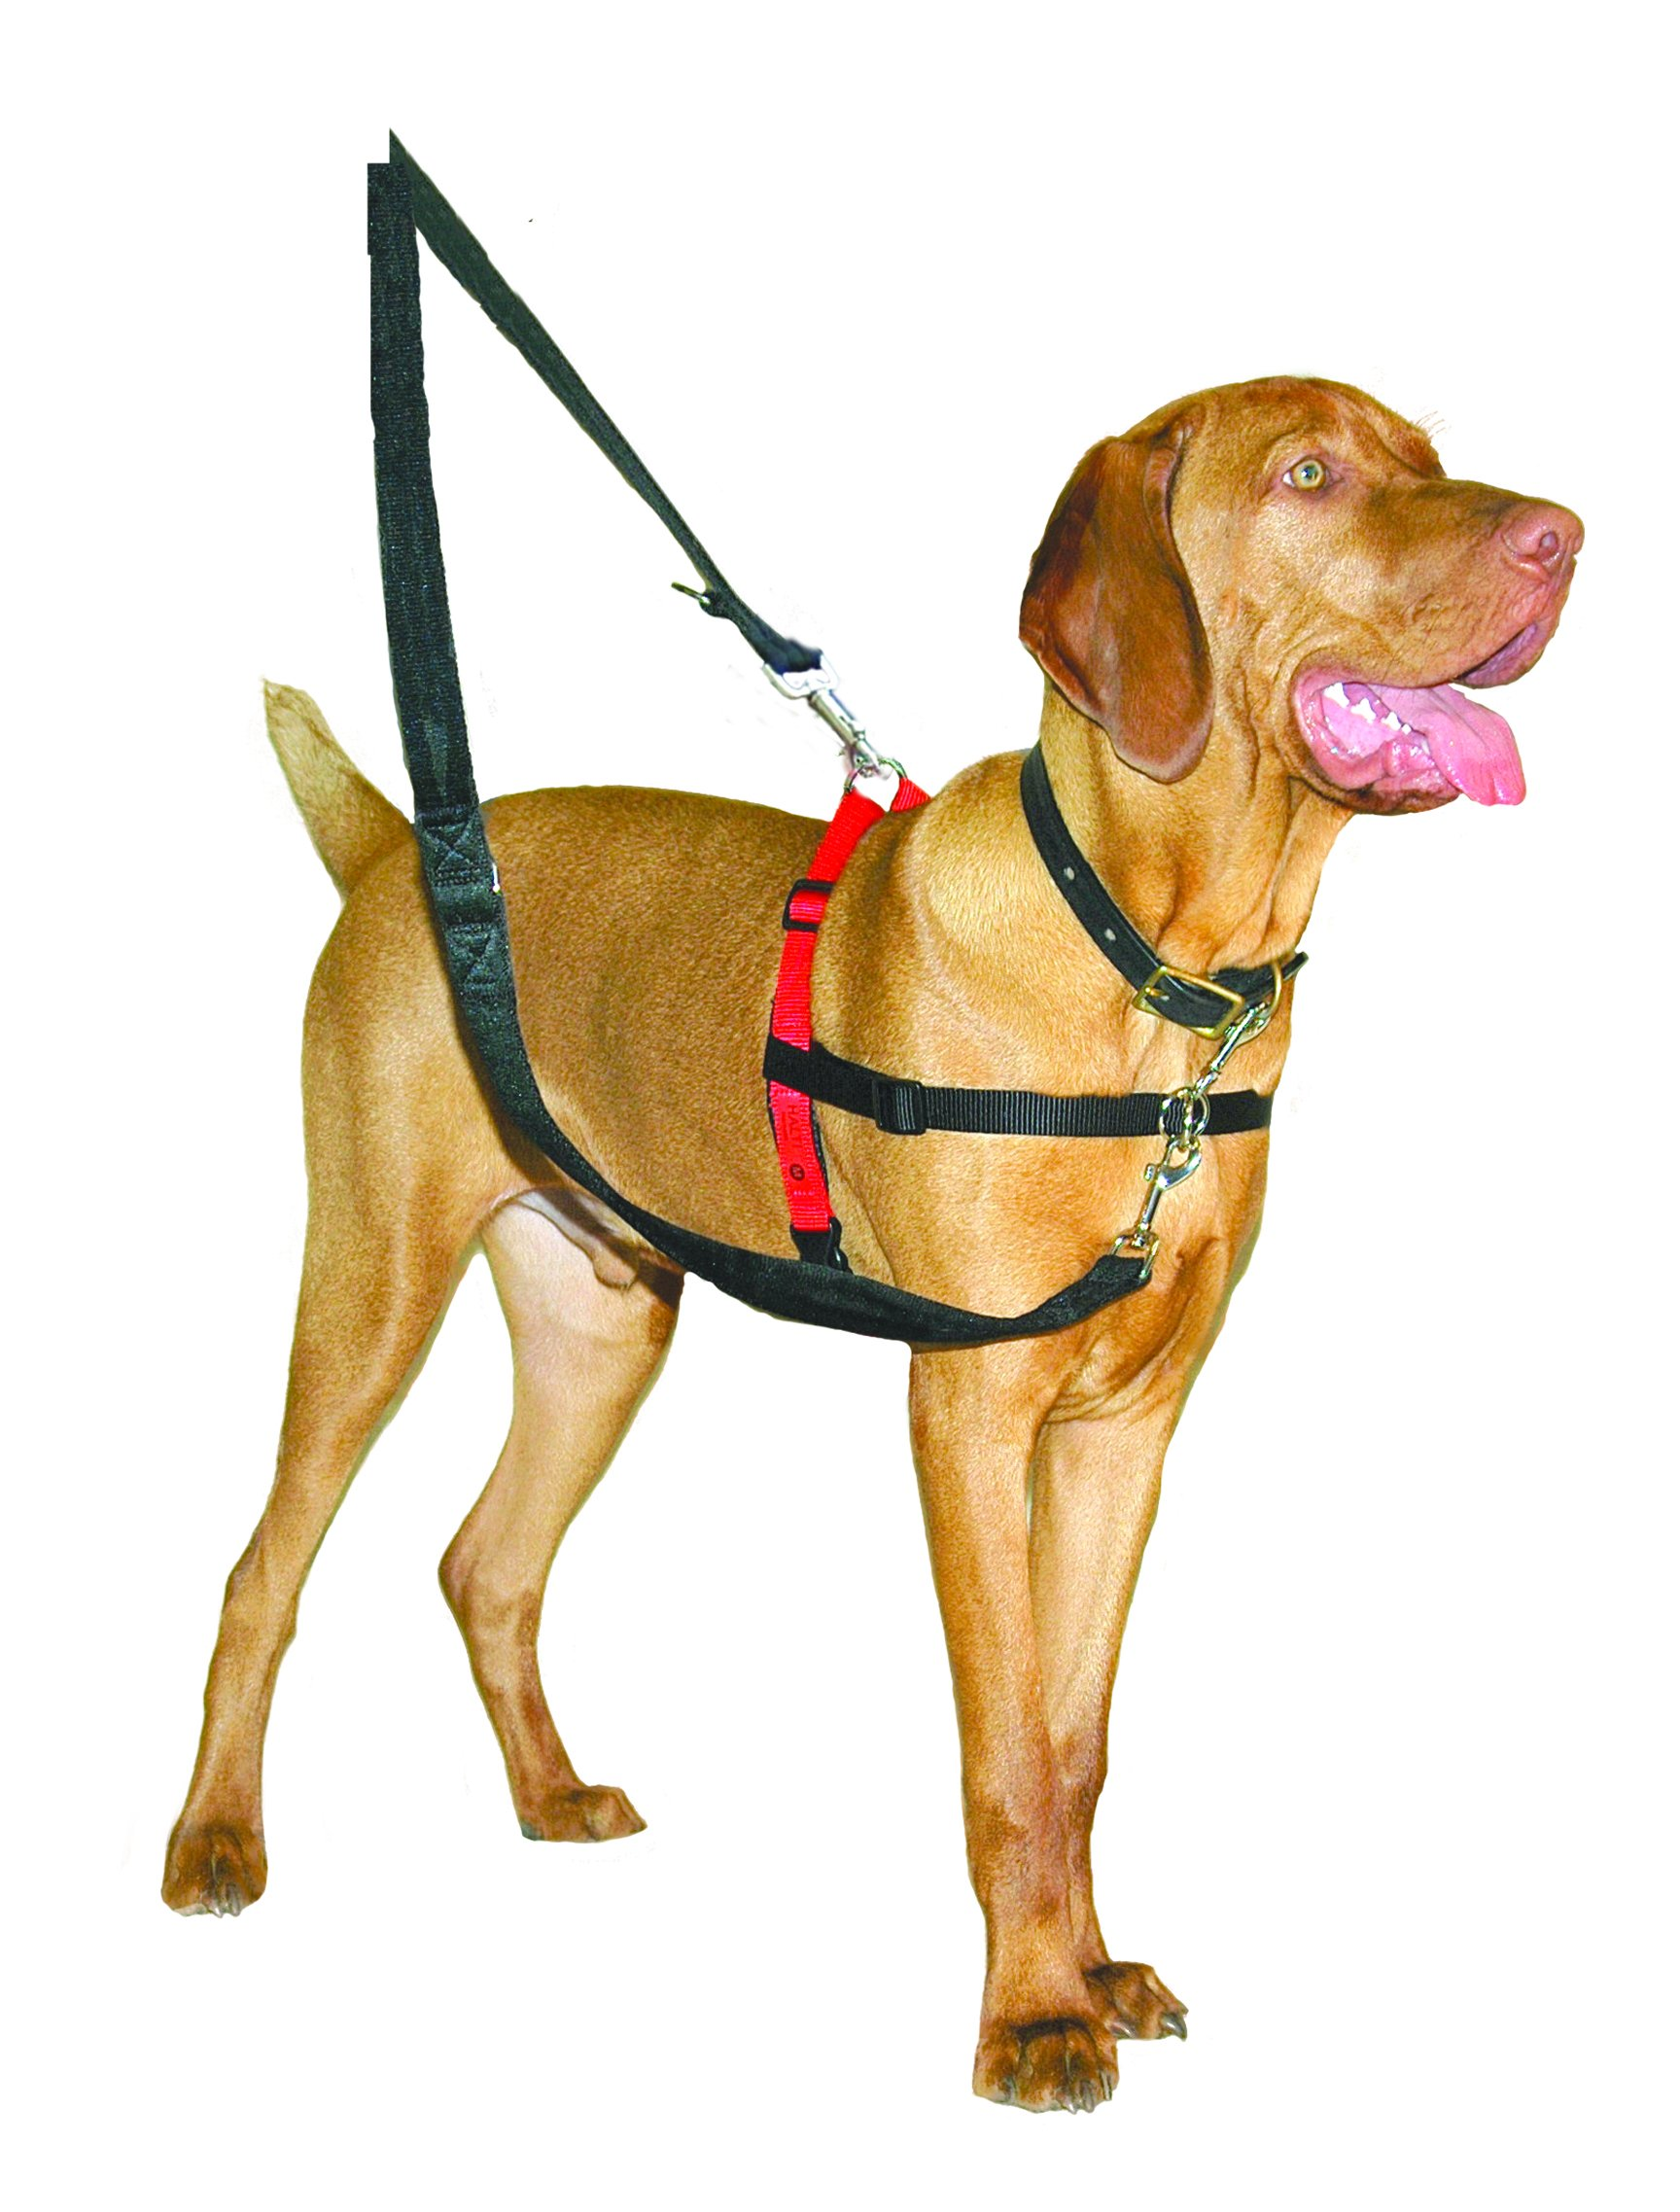 The Company of Animals - HALTI Training Harness - Durable and Adjustable - Comfortable Padded fit - Medium - Black & Red by The Company of Animals (Image #4)